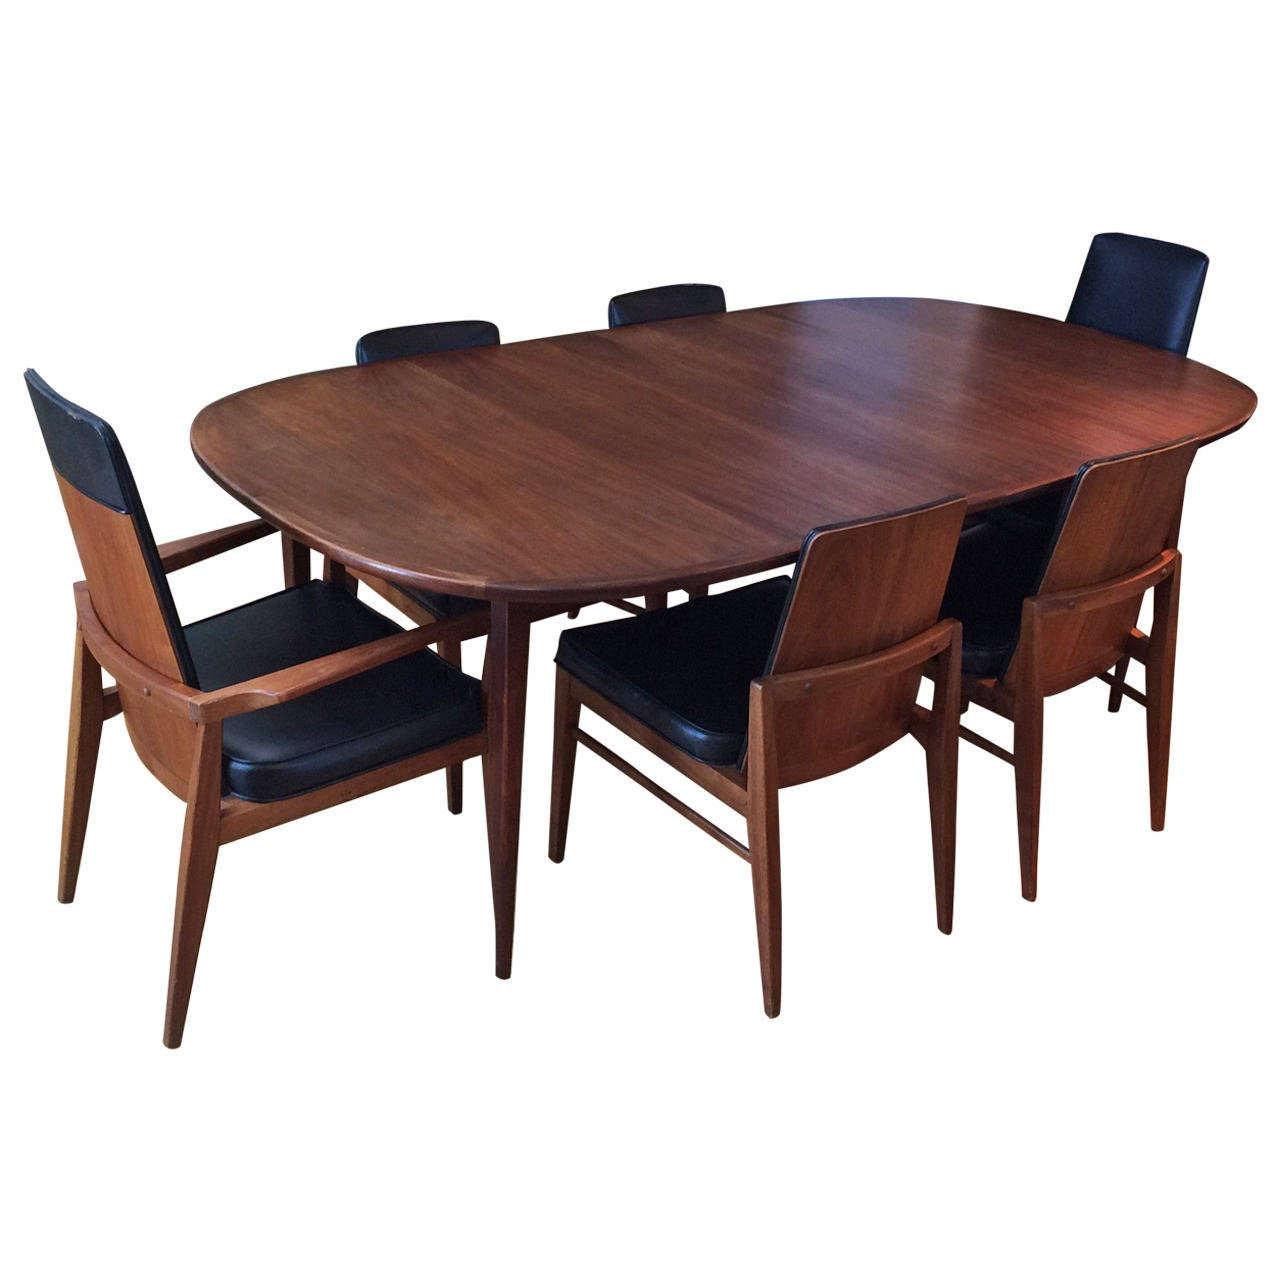 Mid century modern walnut dining set at 1stdibs for Contemporary dining set